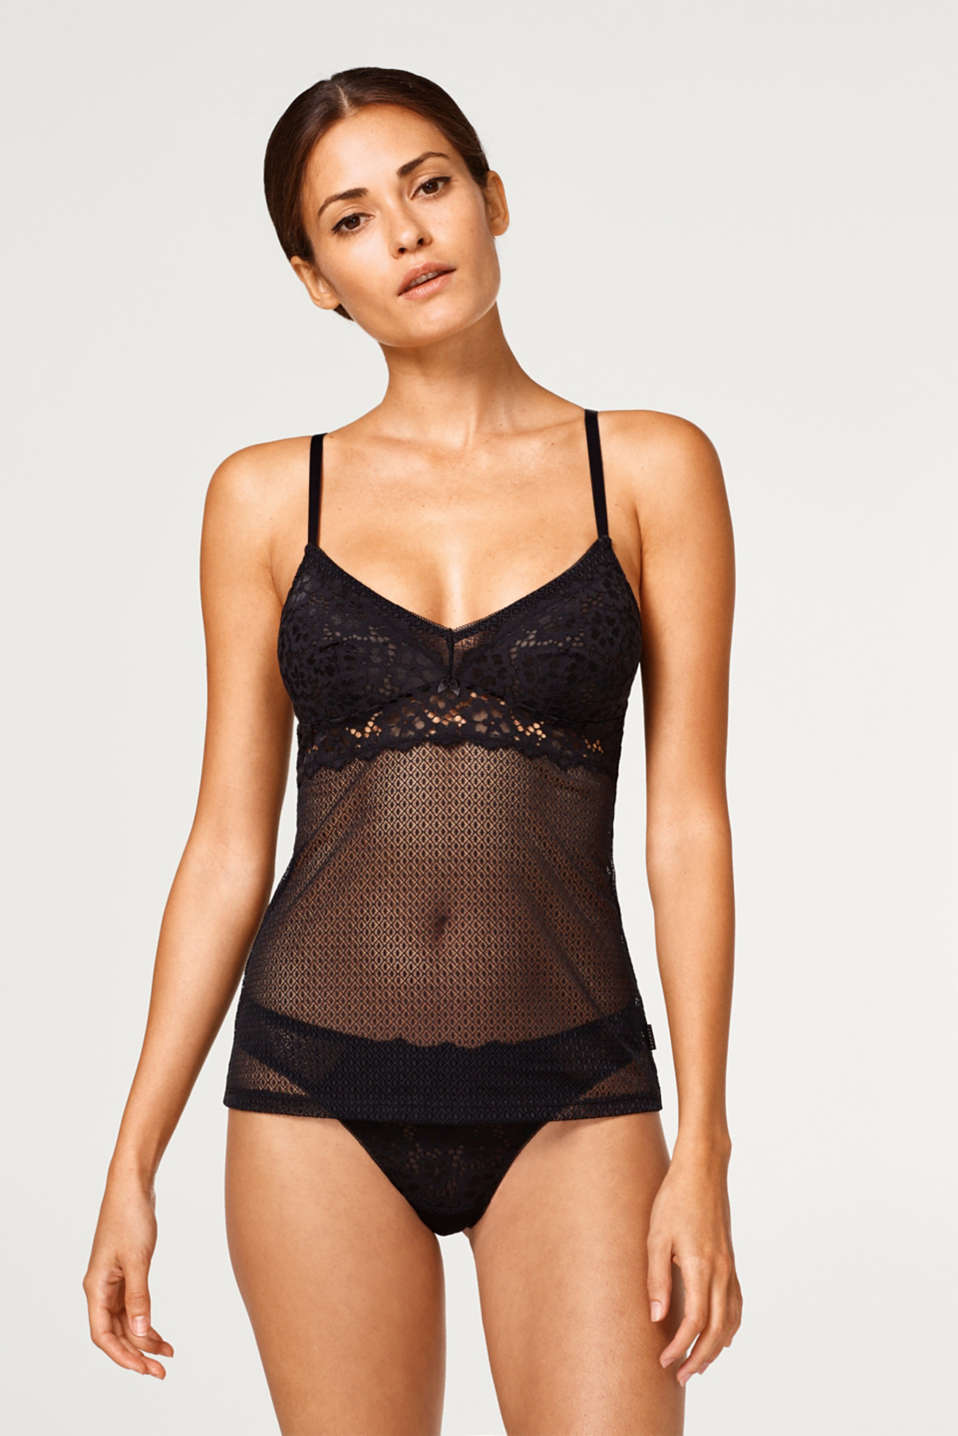 Esprit - Camisole with floral lace